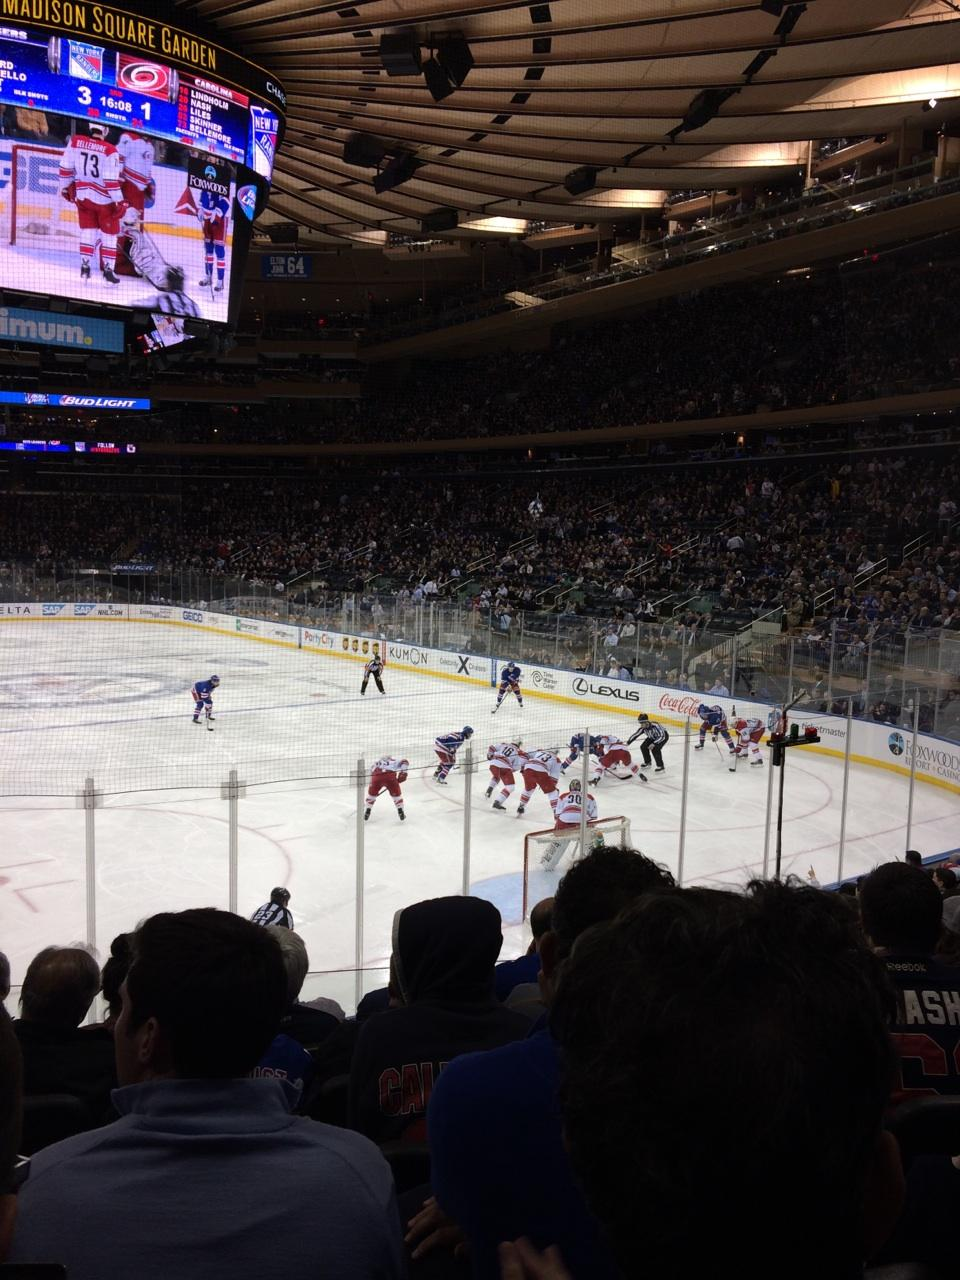 Madison Square Garden Section 111 : Row 11, Seat(s) 11